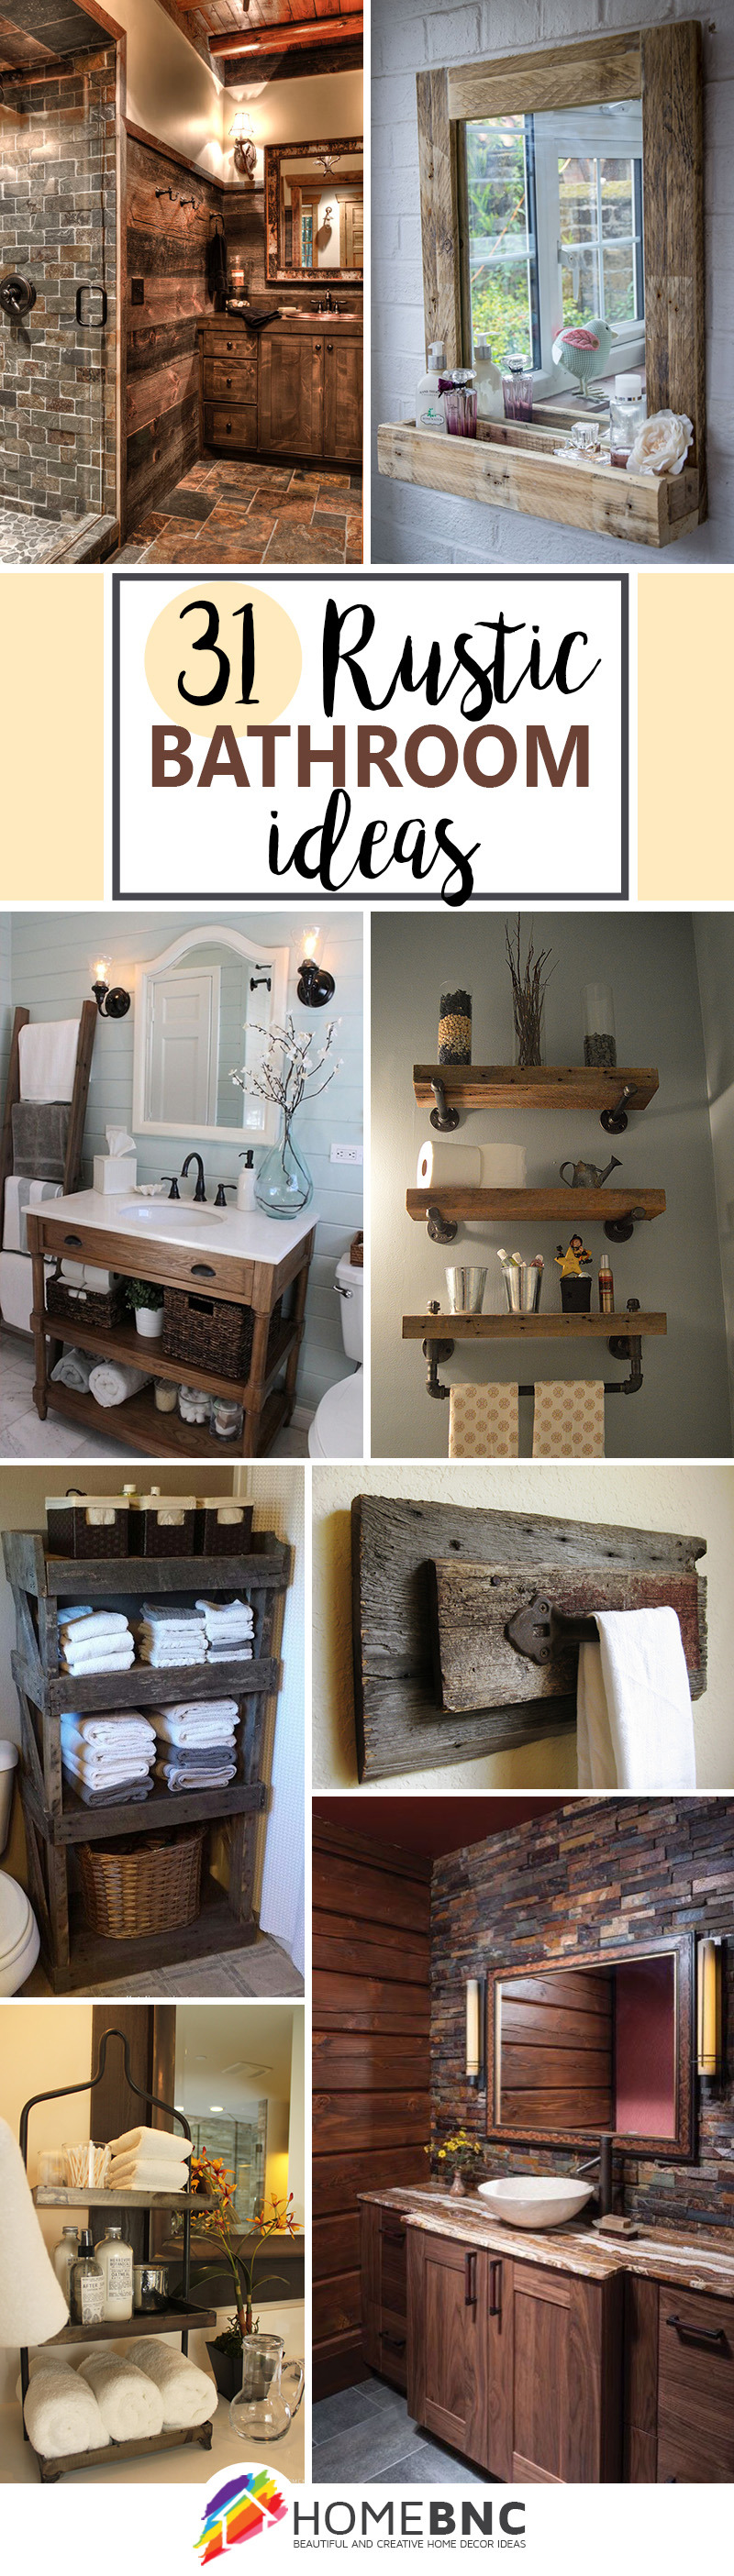 rustic bathroom design decor ideas pinterest share homebnc